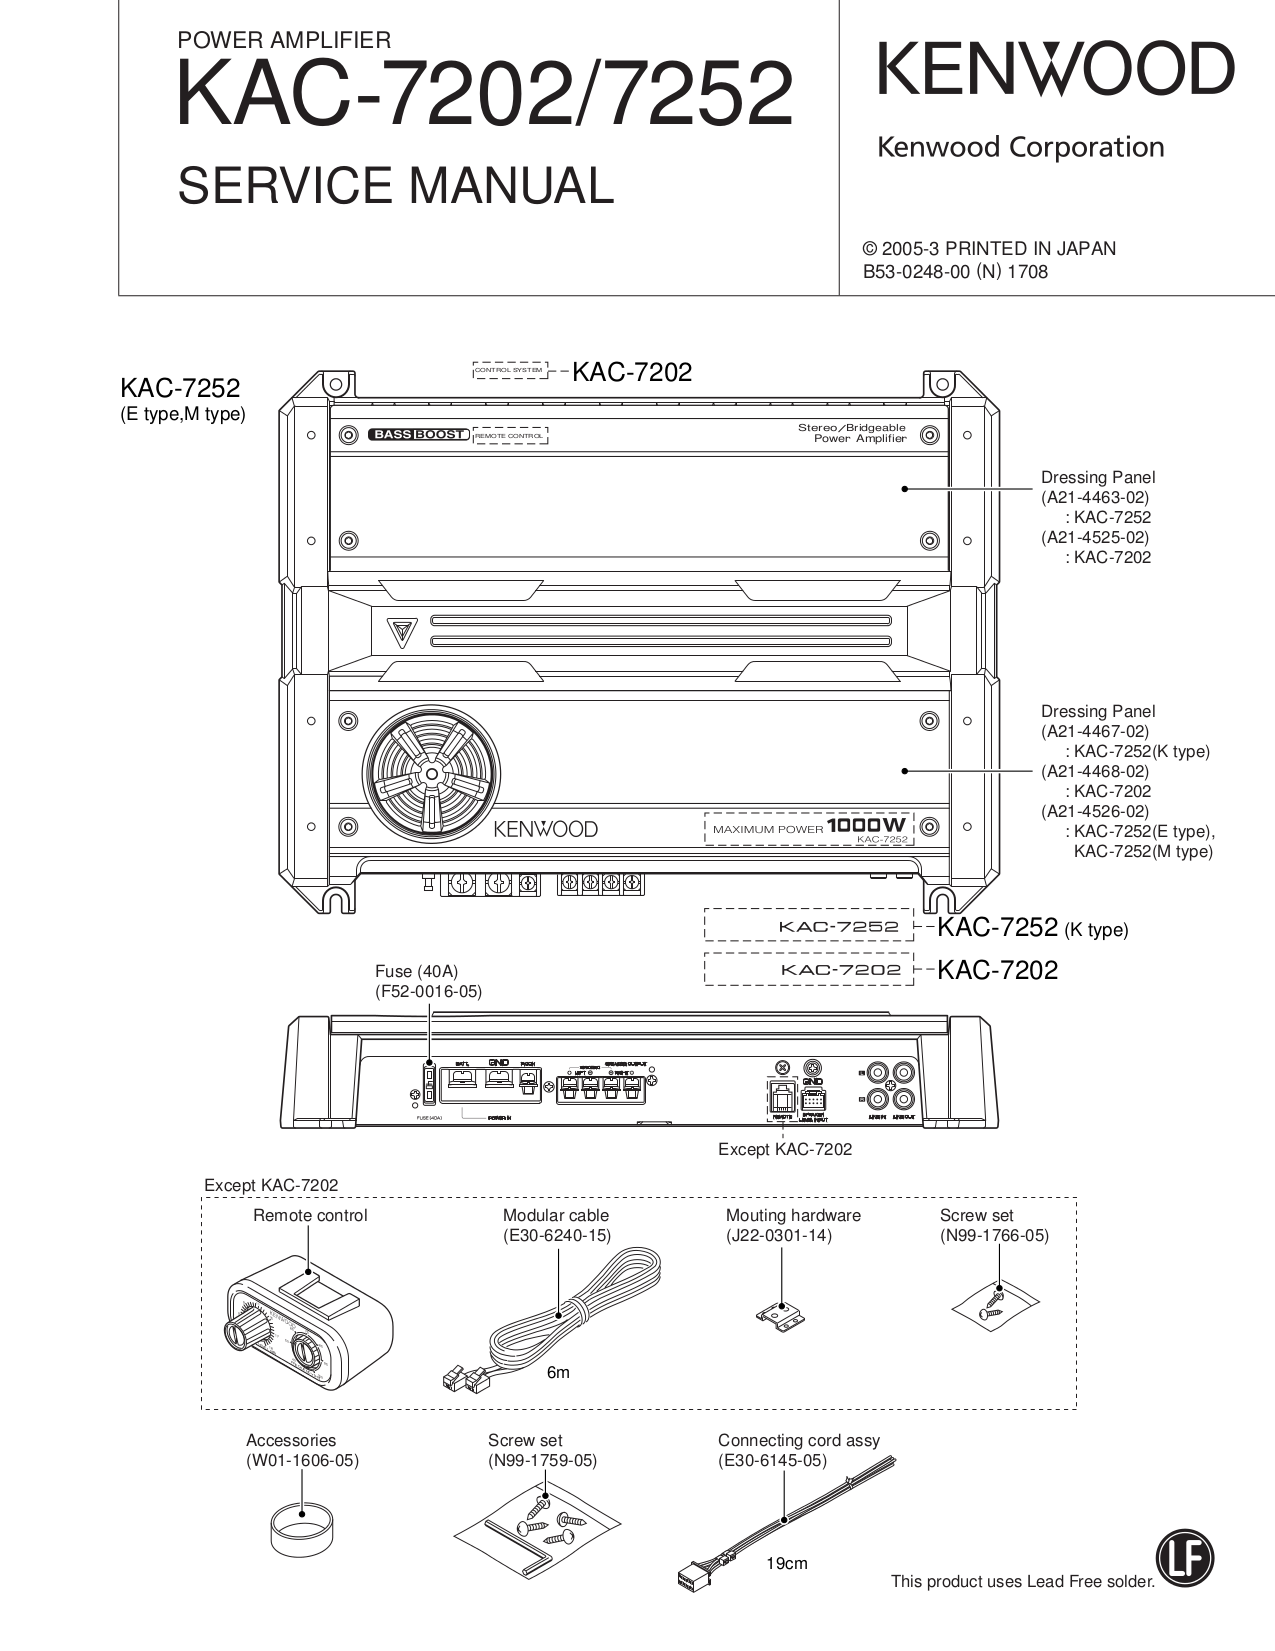 kenwood_kac 7202_[ET][1].pdf 0 download free pdf for kenwood kac 608s car amplifier manual kenwood kac-7202 wiring diagram at suagrazia.org